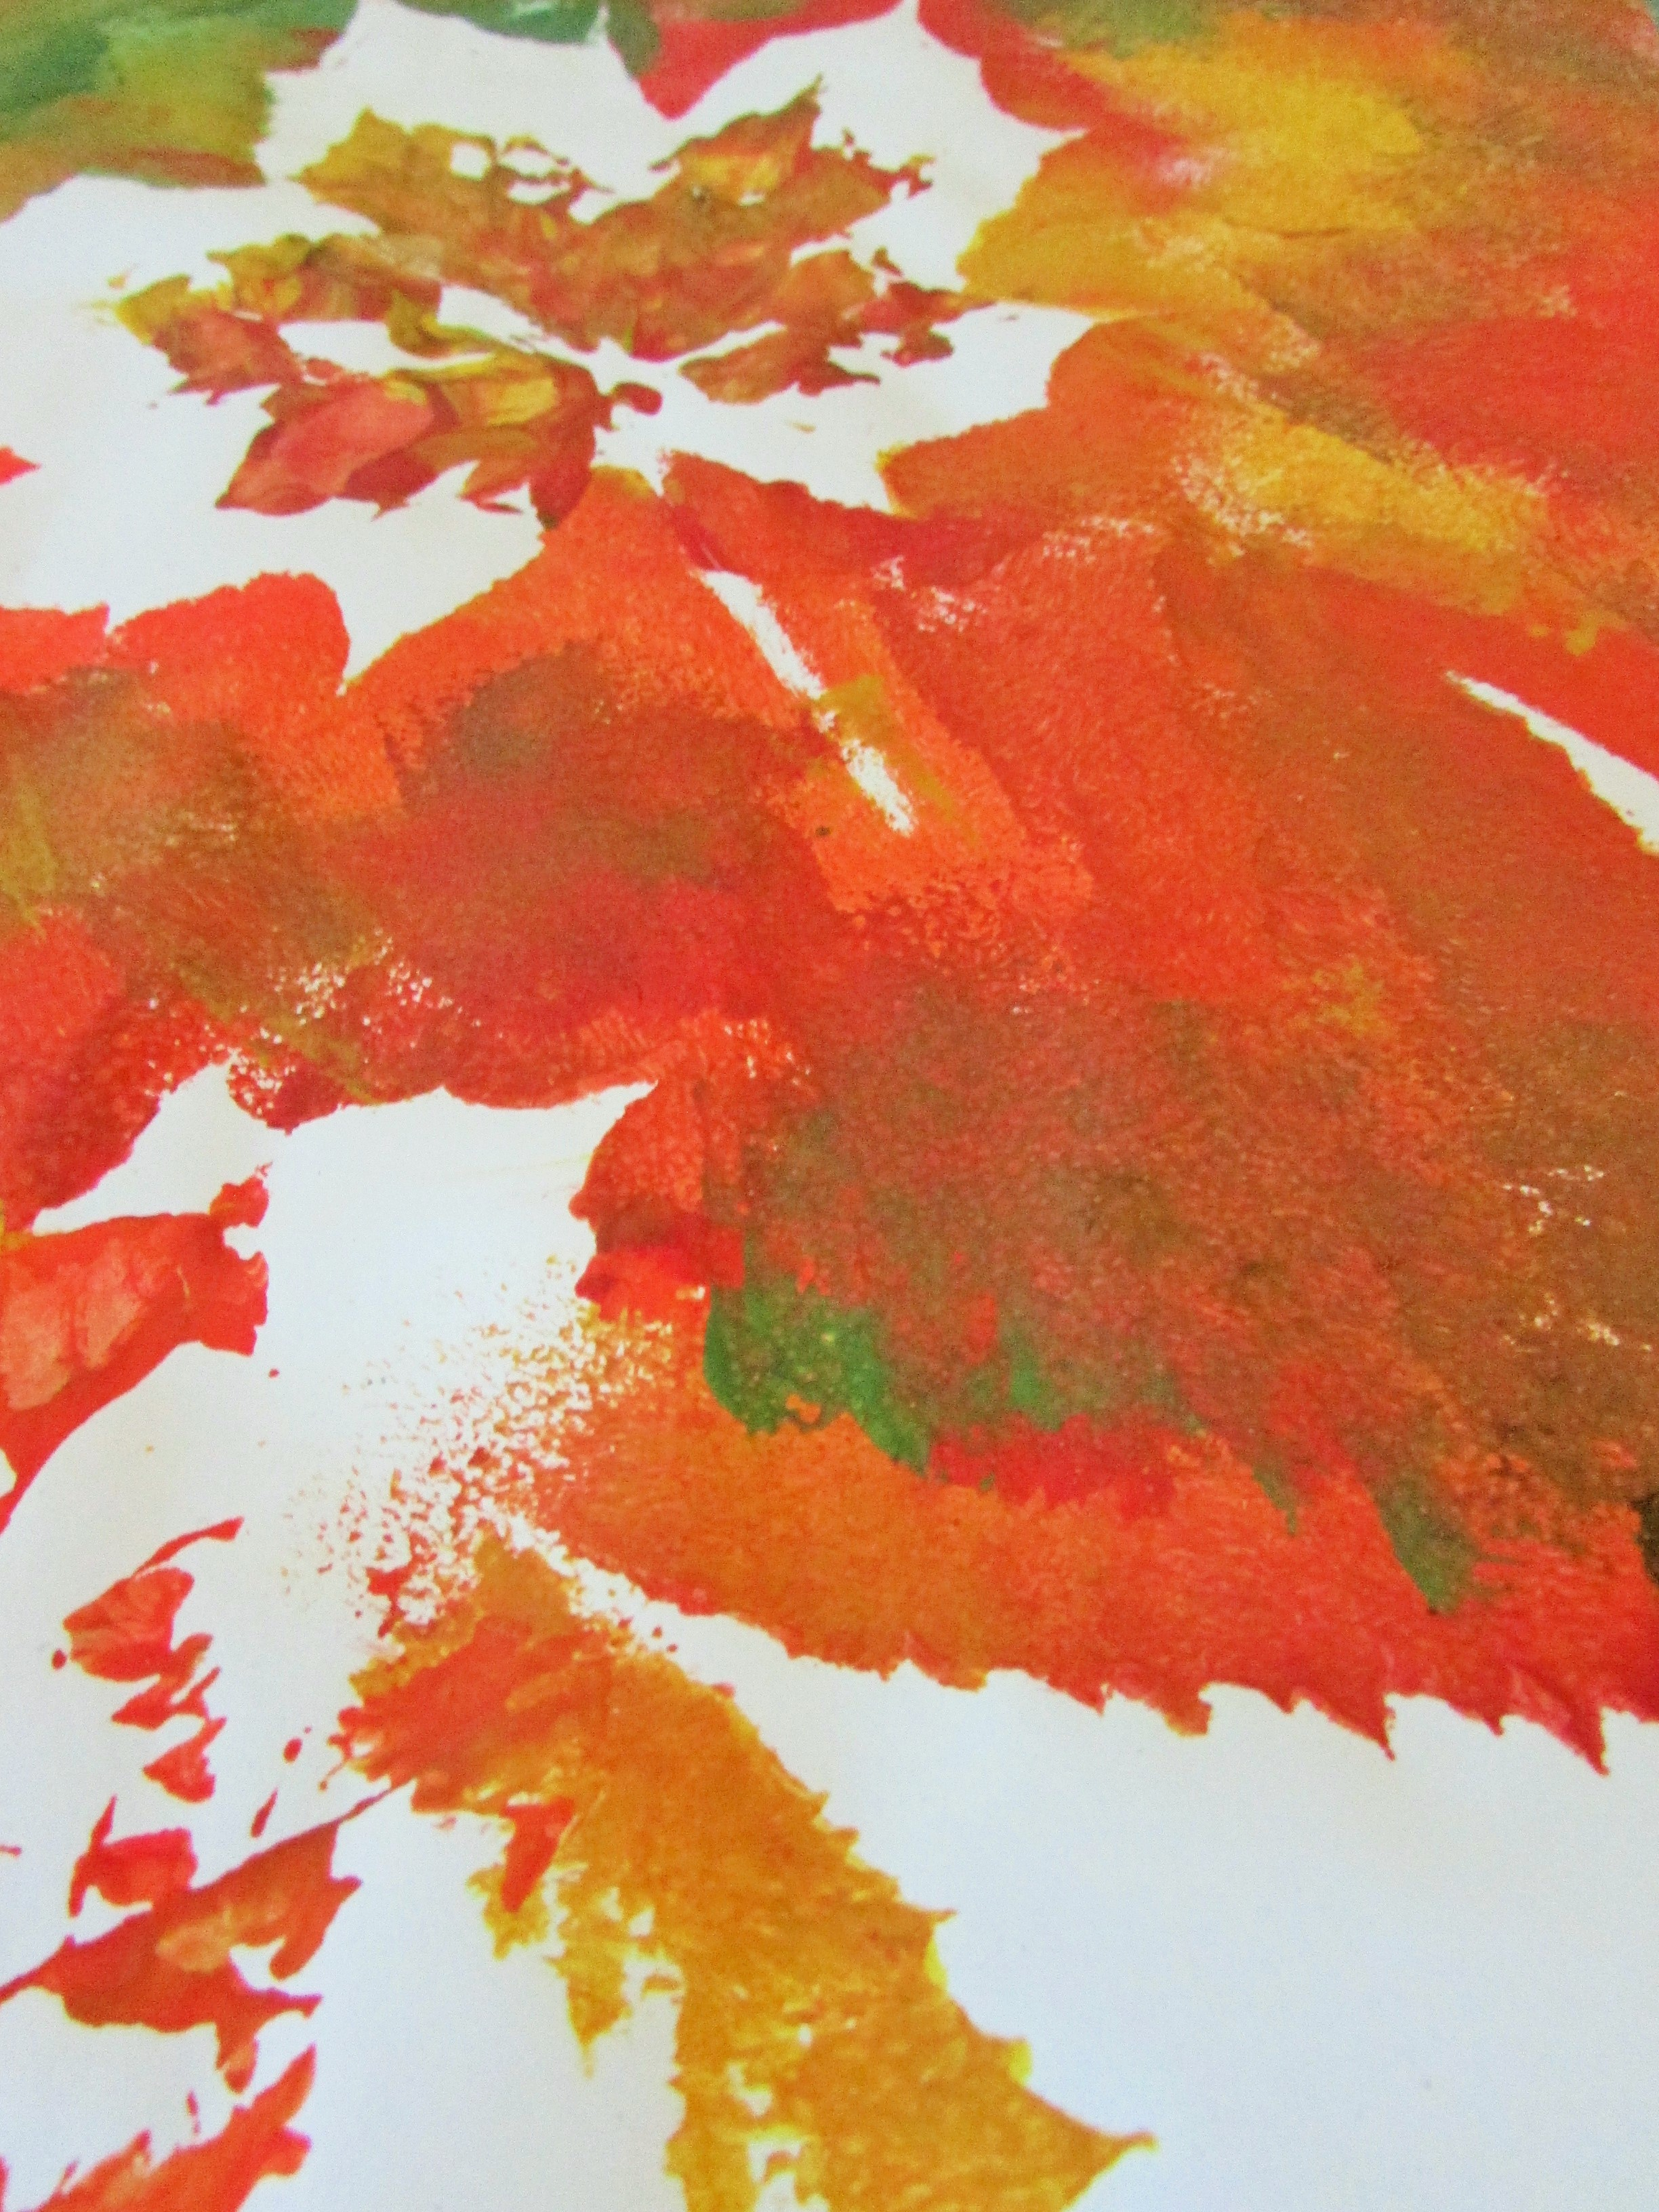 Leaf archives craft ideas for kids for Fall pictures to paint